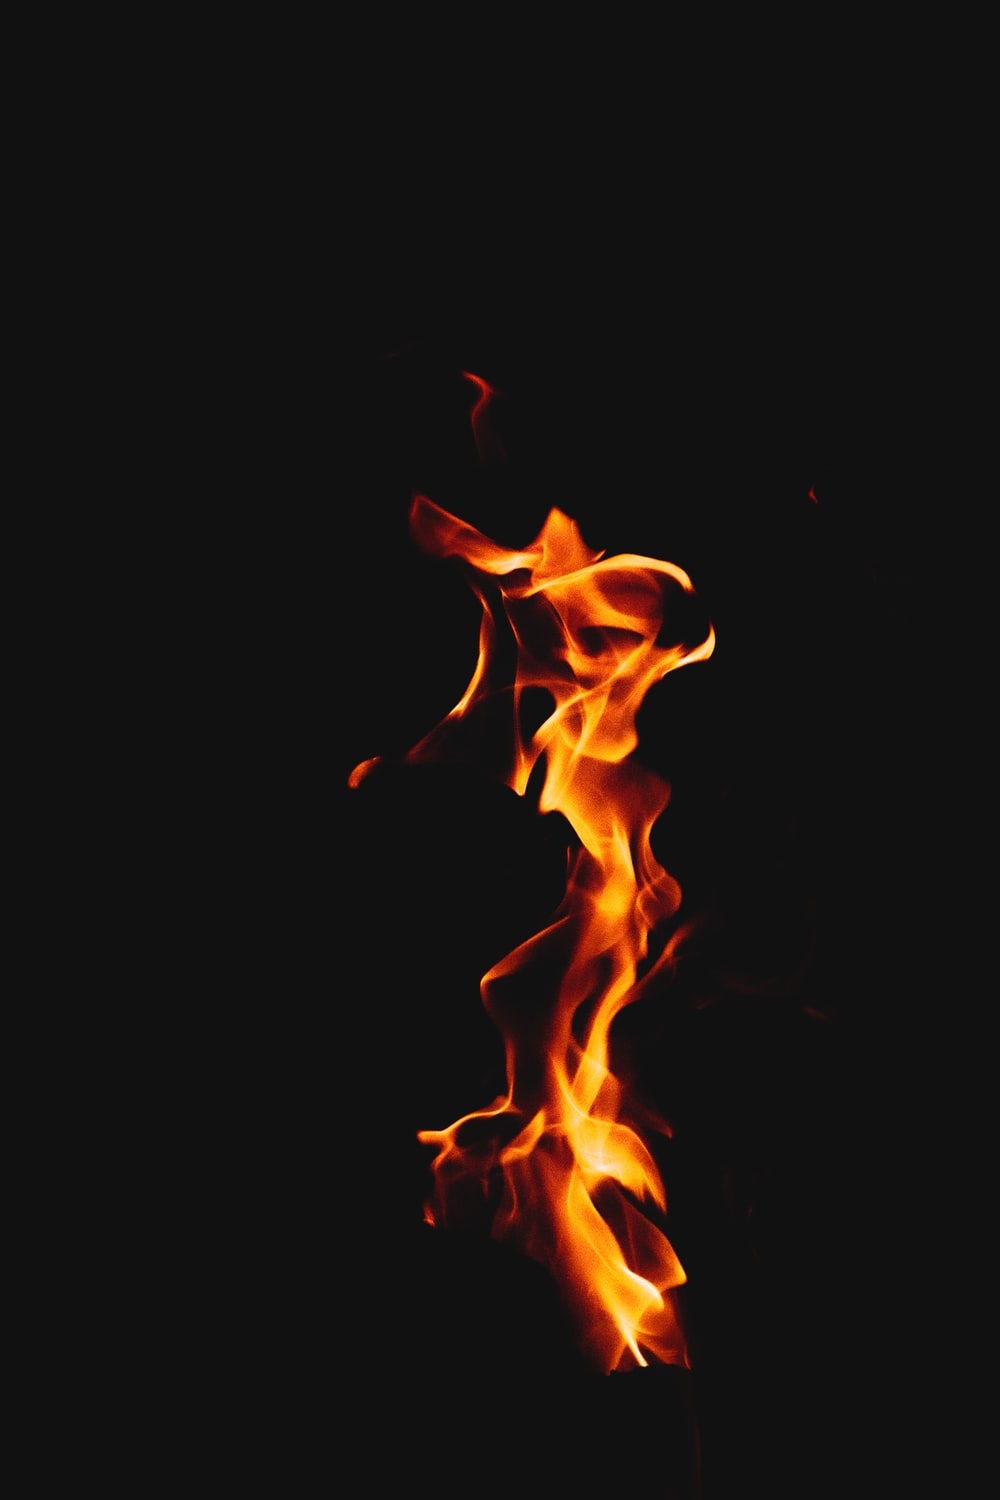 500 Flame Pictures Download Images on Unsplash 1000x1500